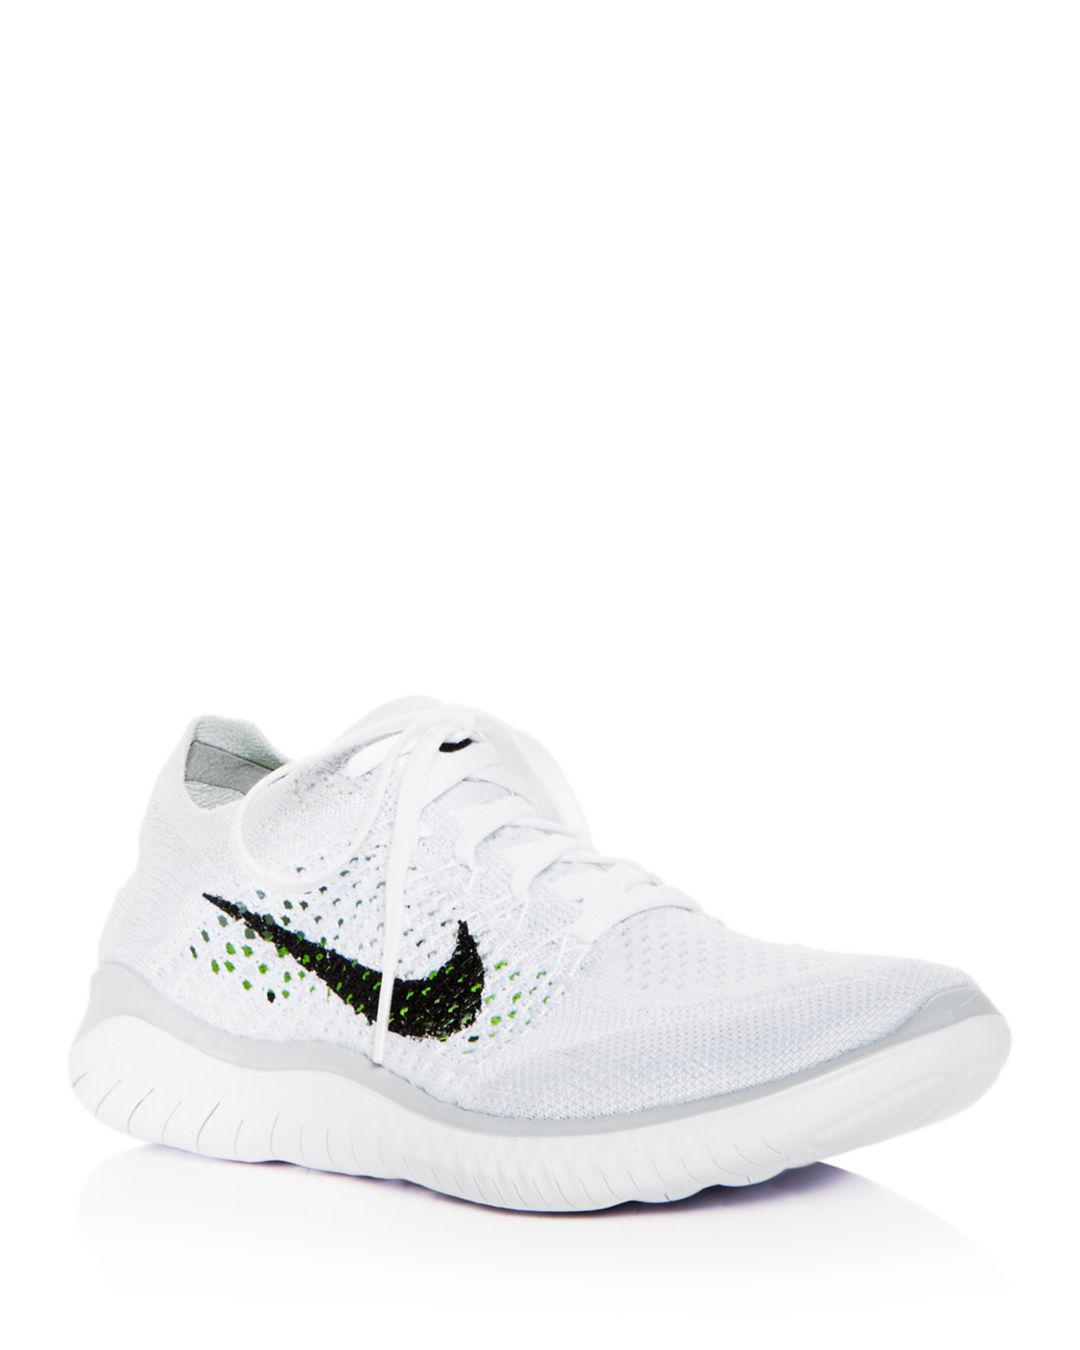 edab206565816 Lyst - Nike Women s Free Rn Flyknit 2018 Lace Up Sneakers in White ...